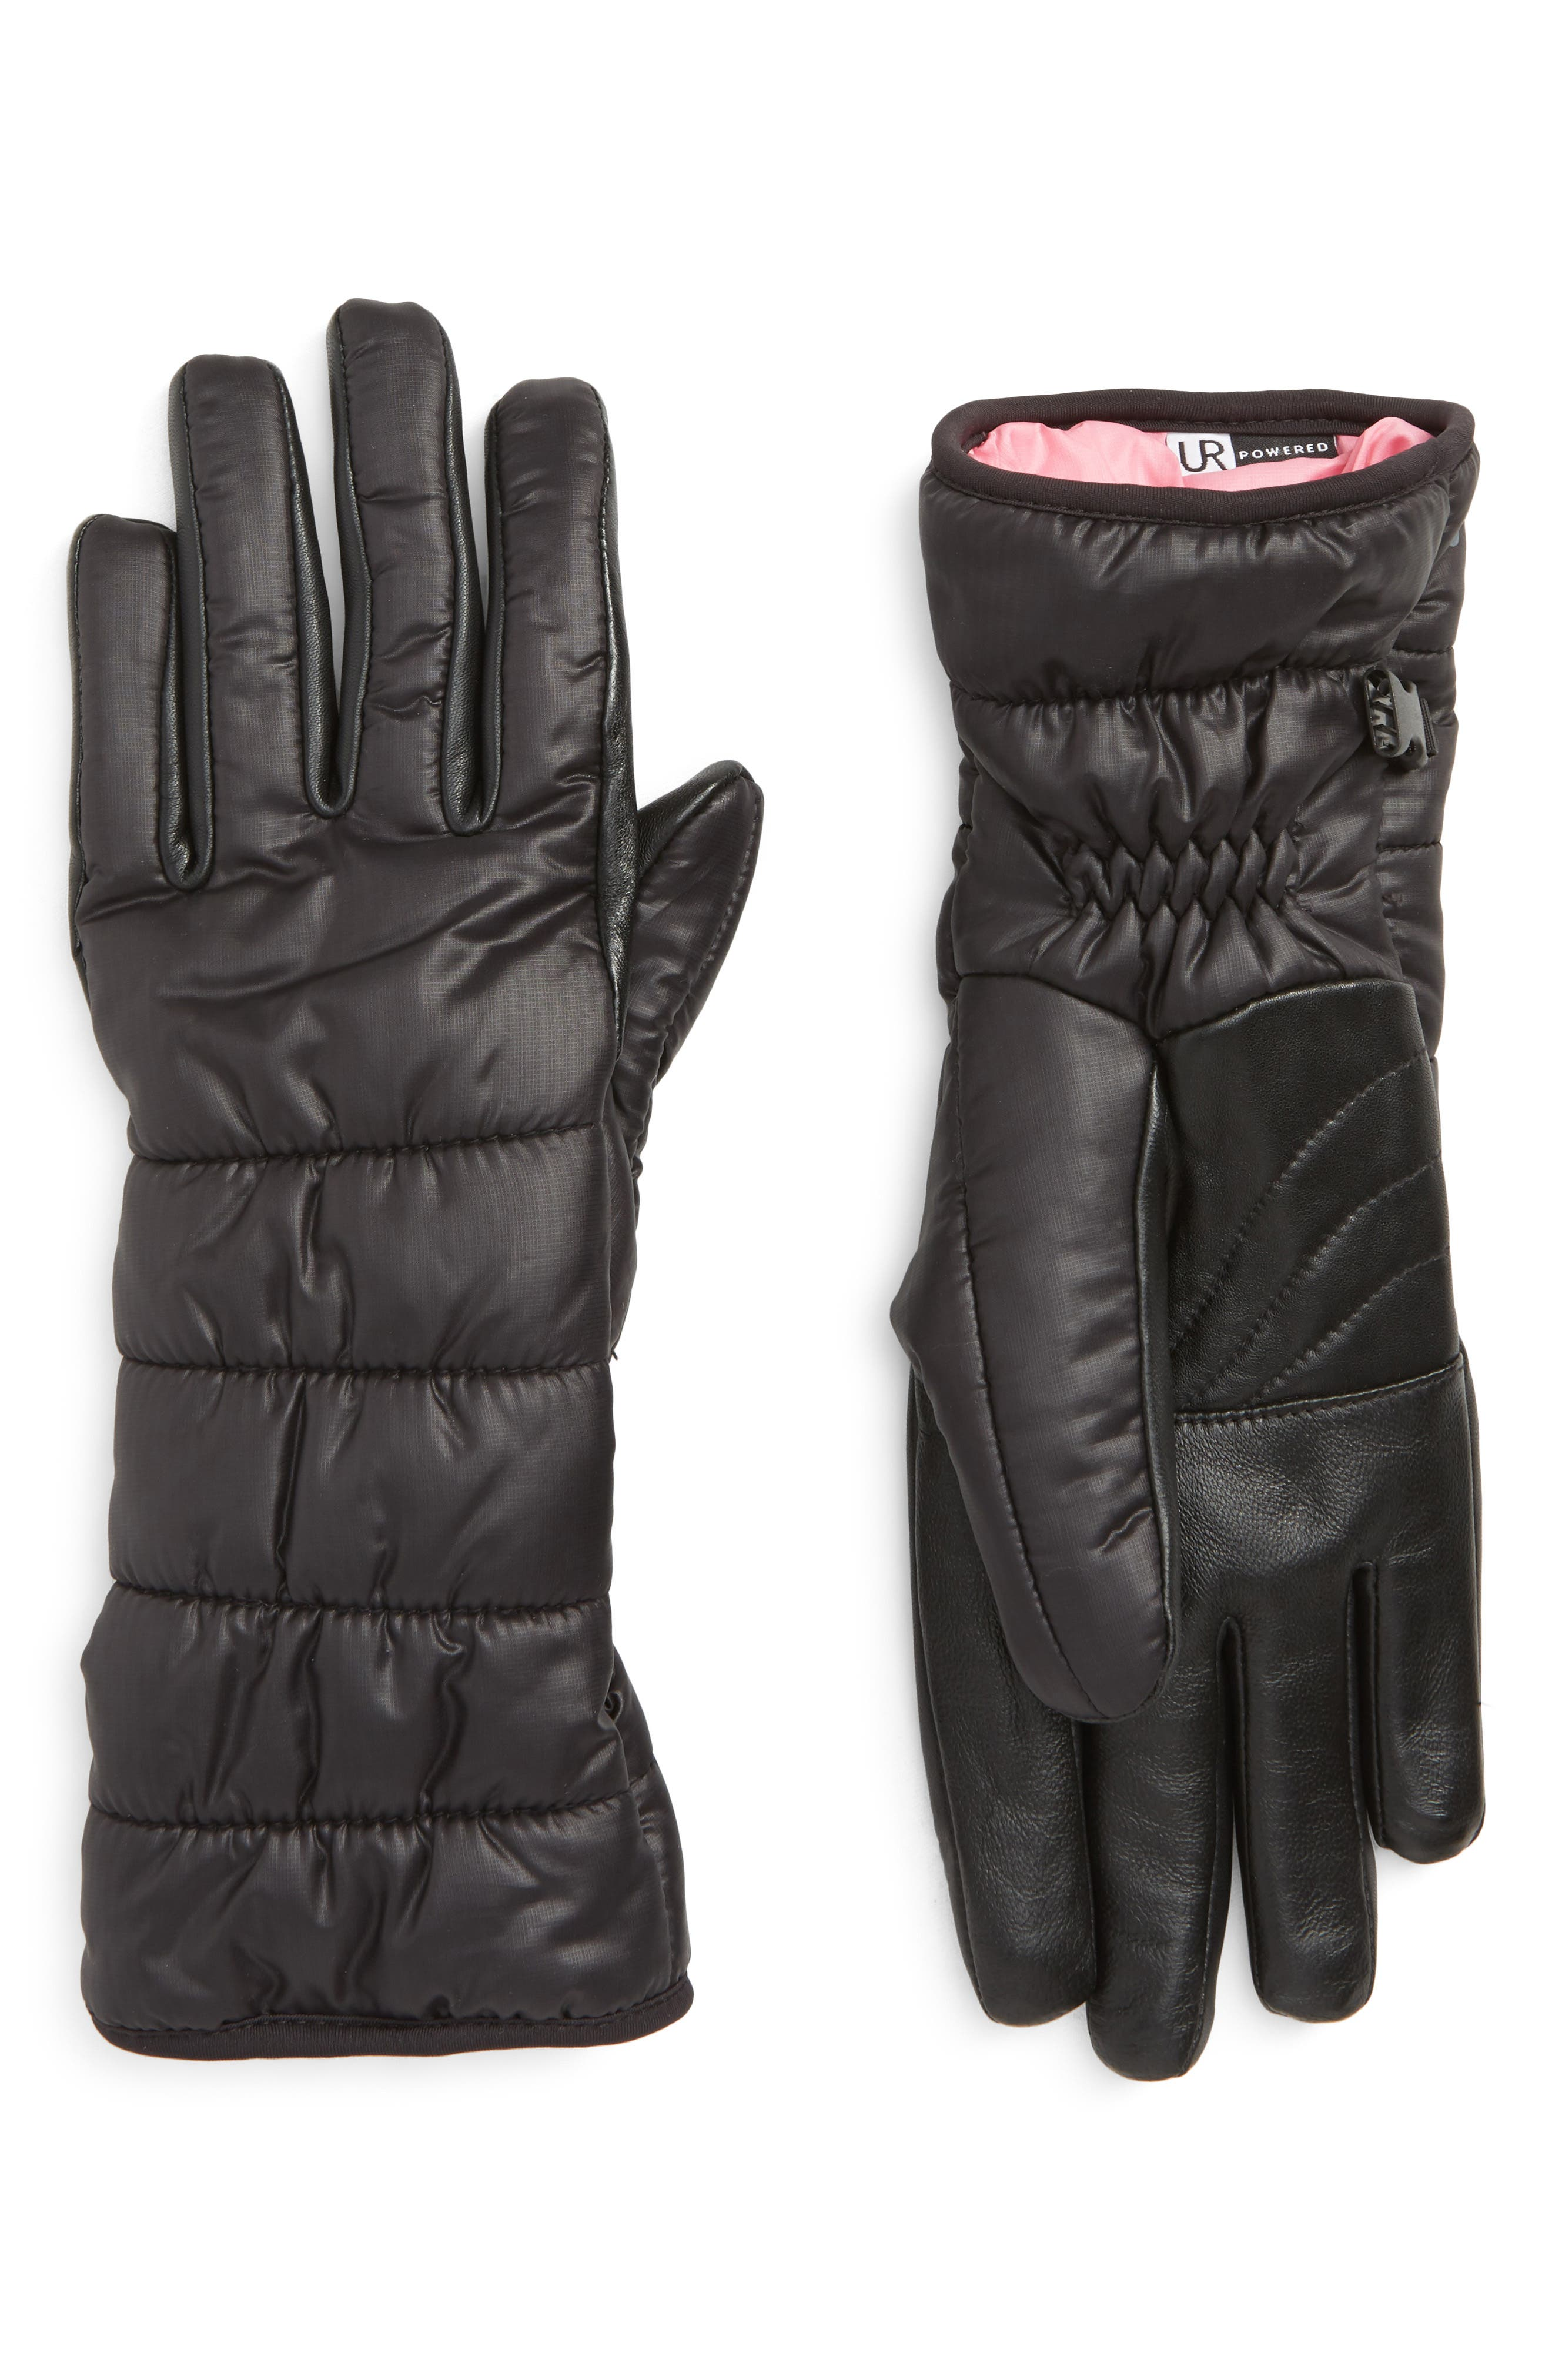 Extreme Cold Weather Waterproof Touchscreen-Compatible Gloves,                             Main thumbnail 1, color,                             001